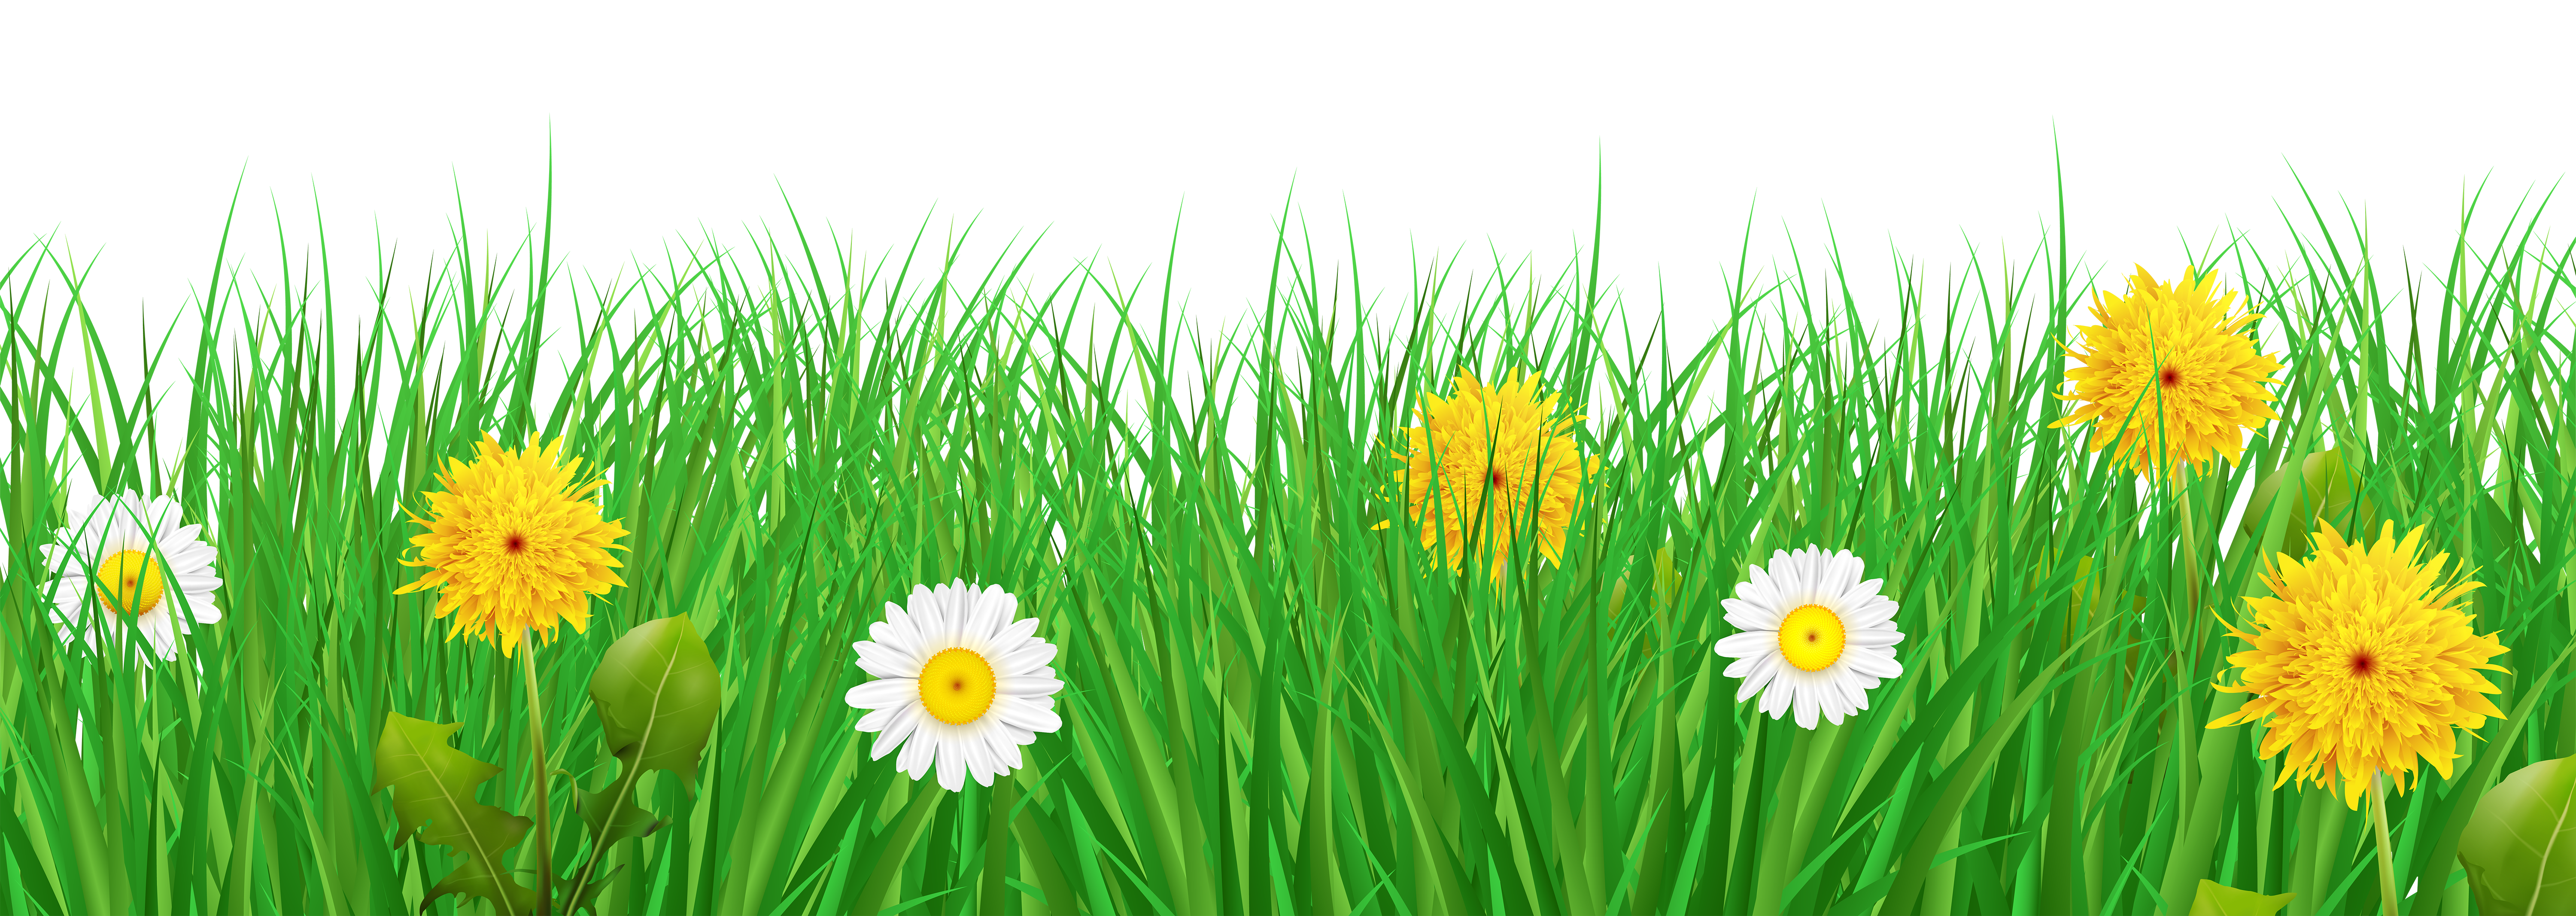 Clipart grass and flowers svg transparent Grass and Flowers Transparent PNG Clip Art Image svg transparent